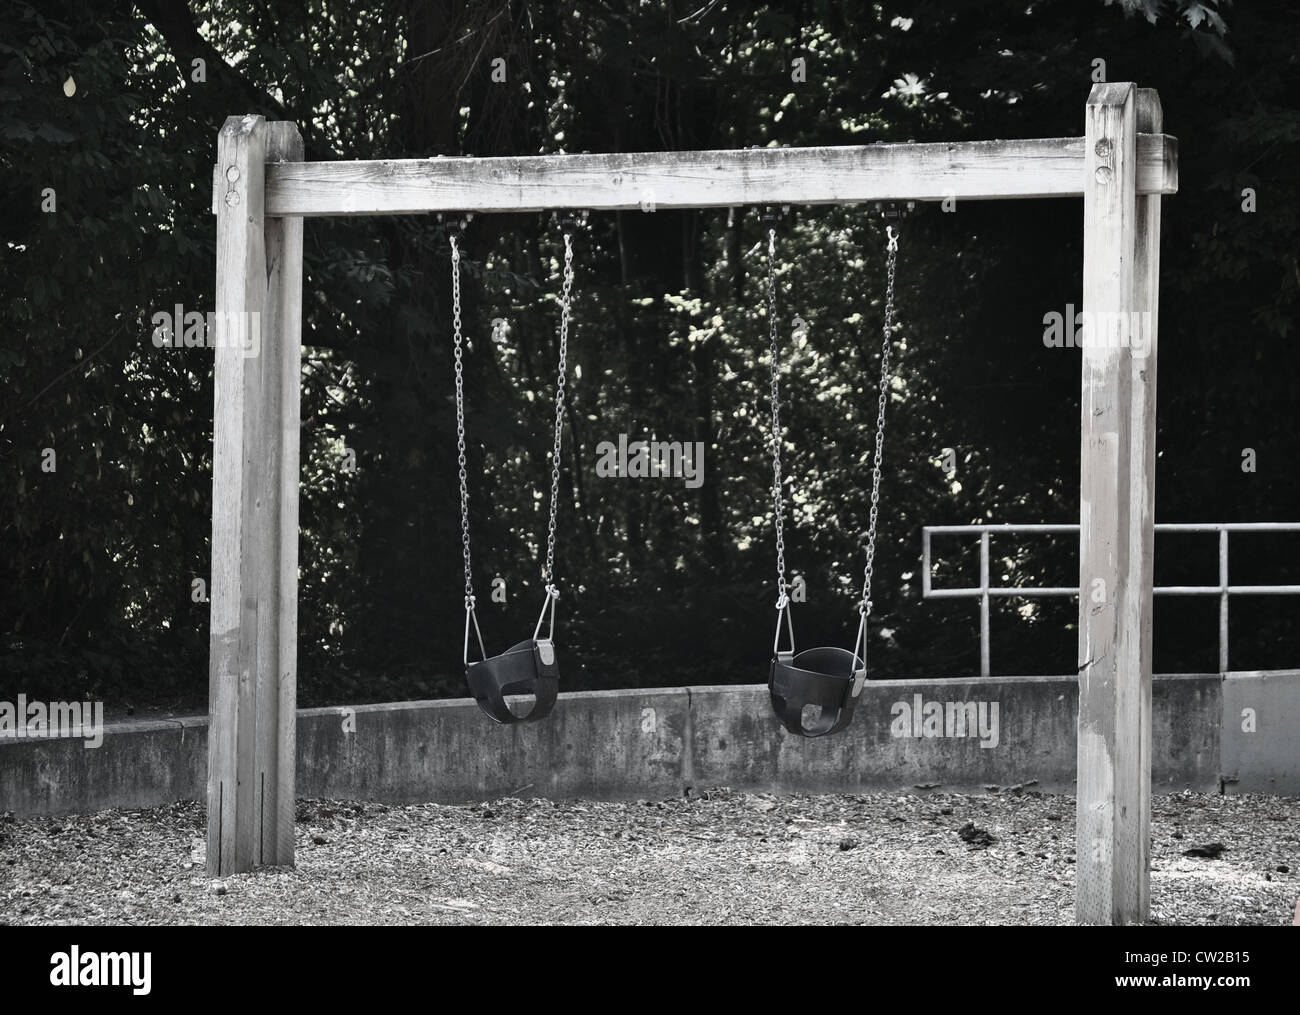 Swings at the park - Stock Image